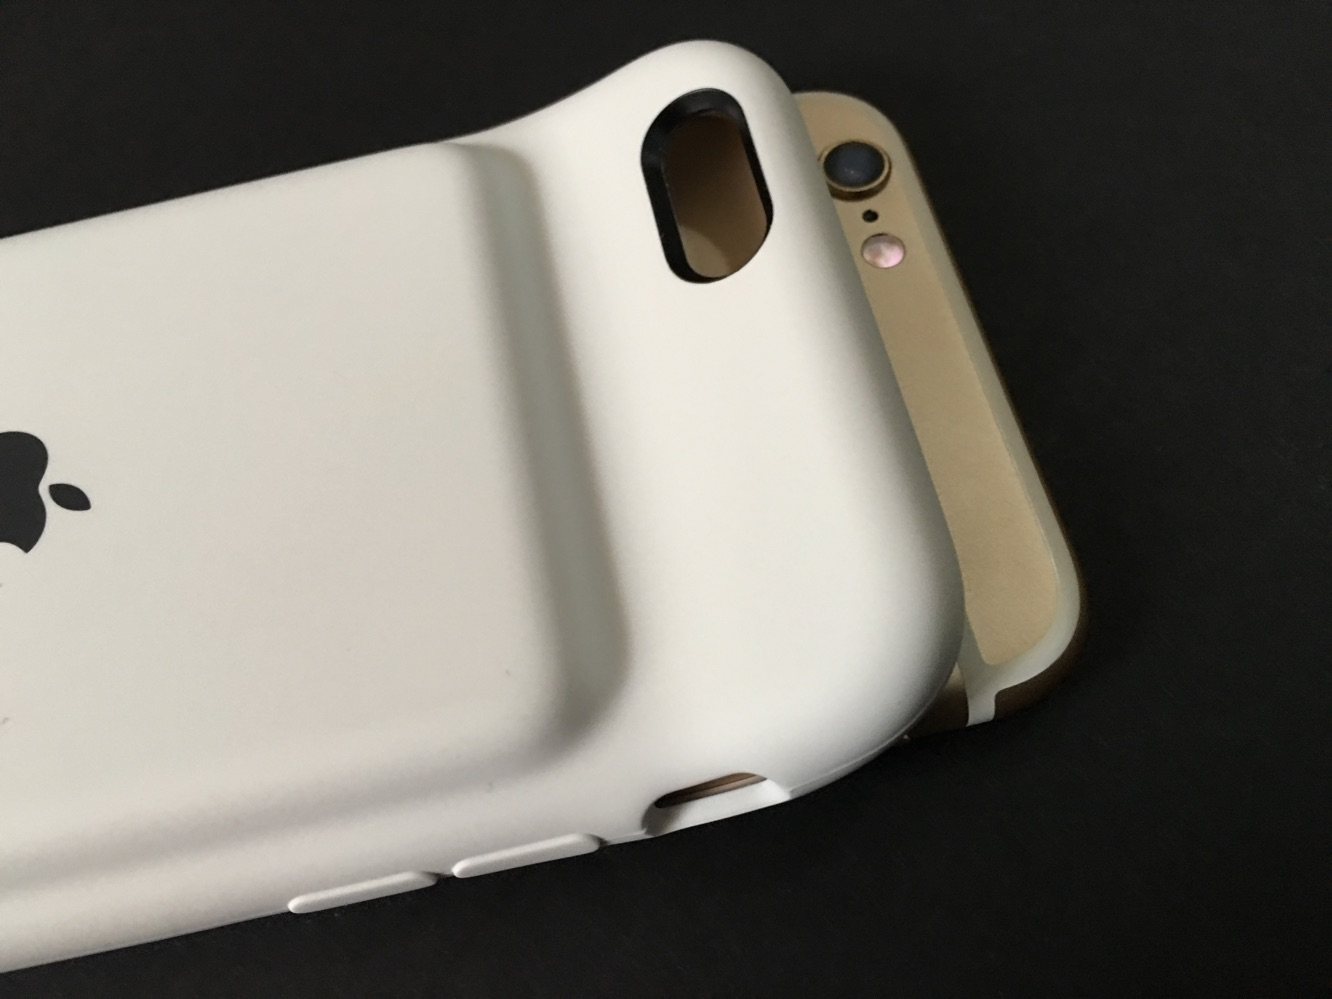 Review: Apple iPhone 6s Smart Battery Case 3